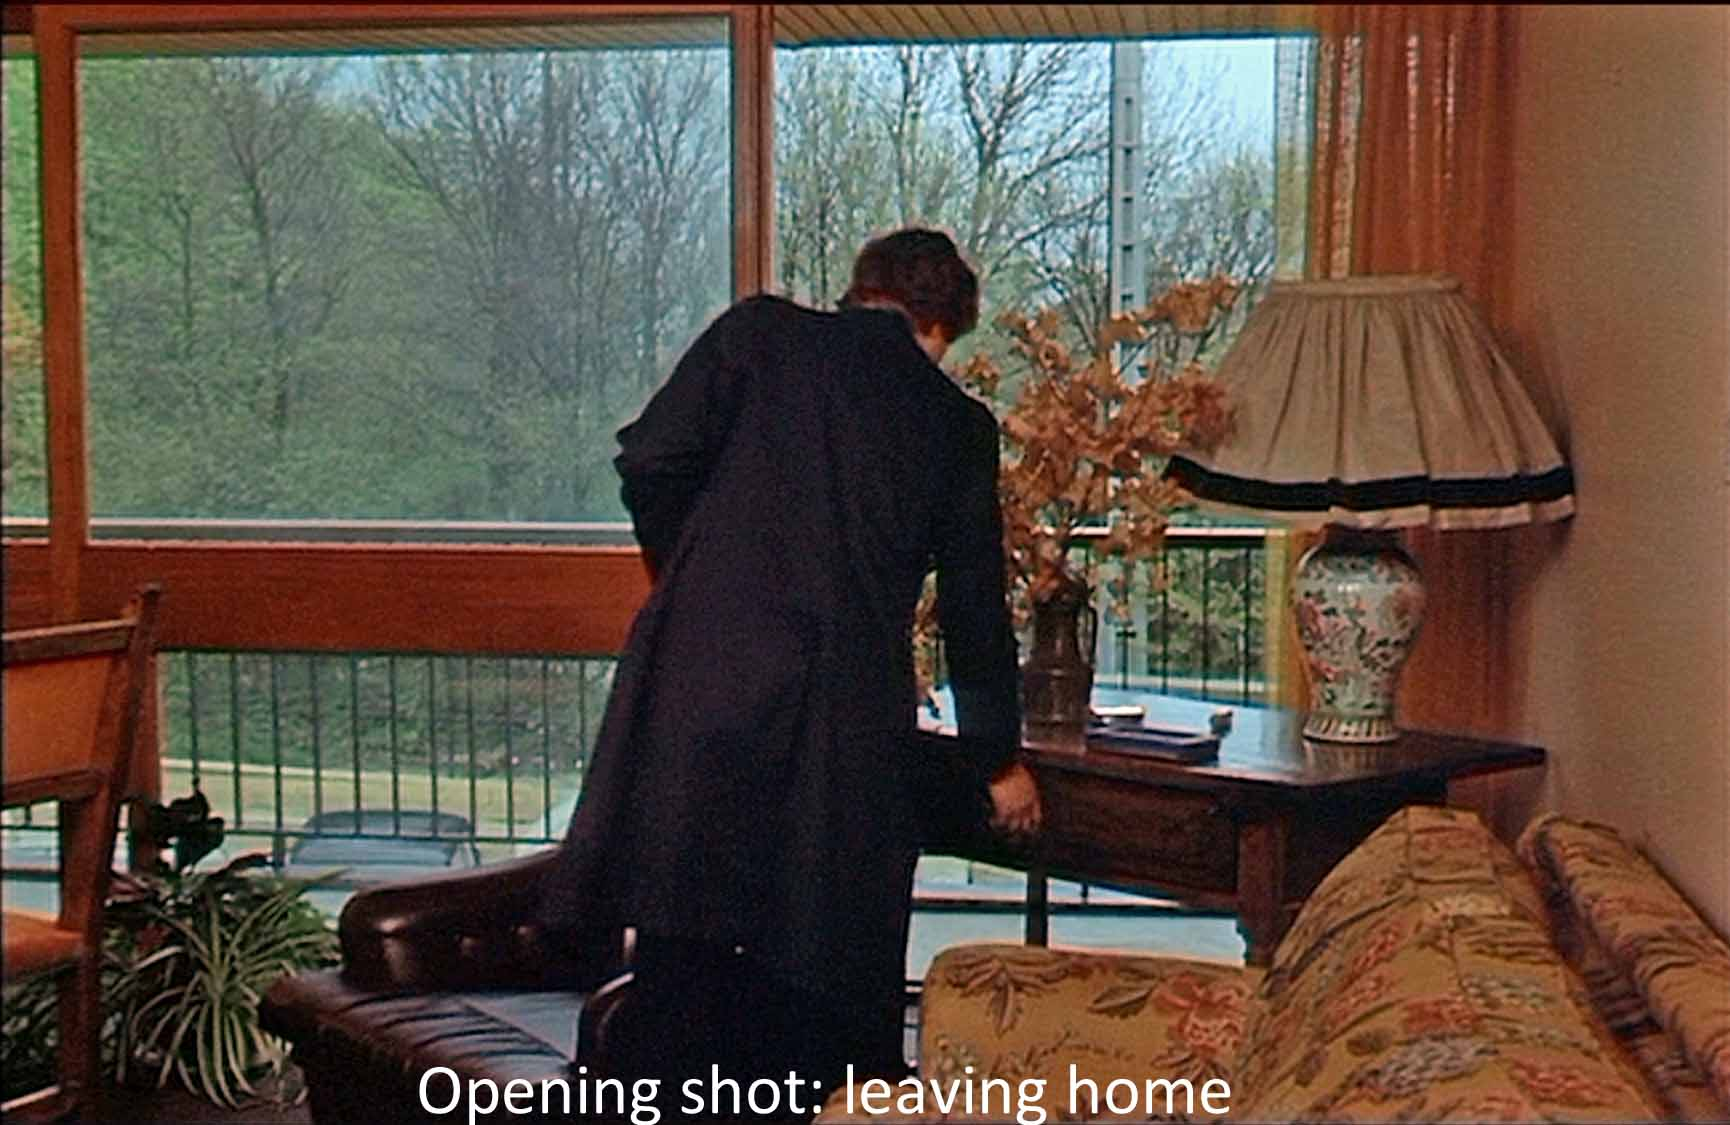 Opening shot: leaving home